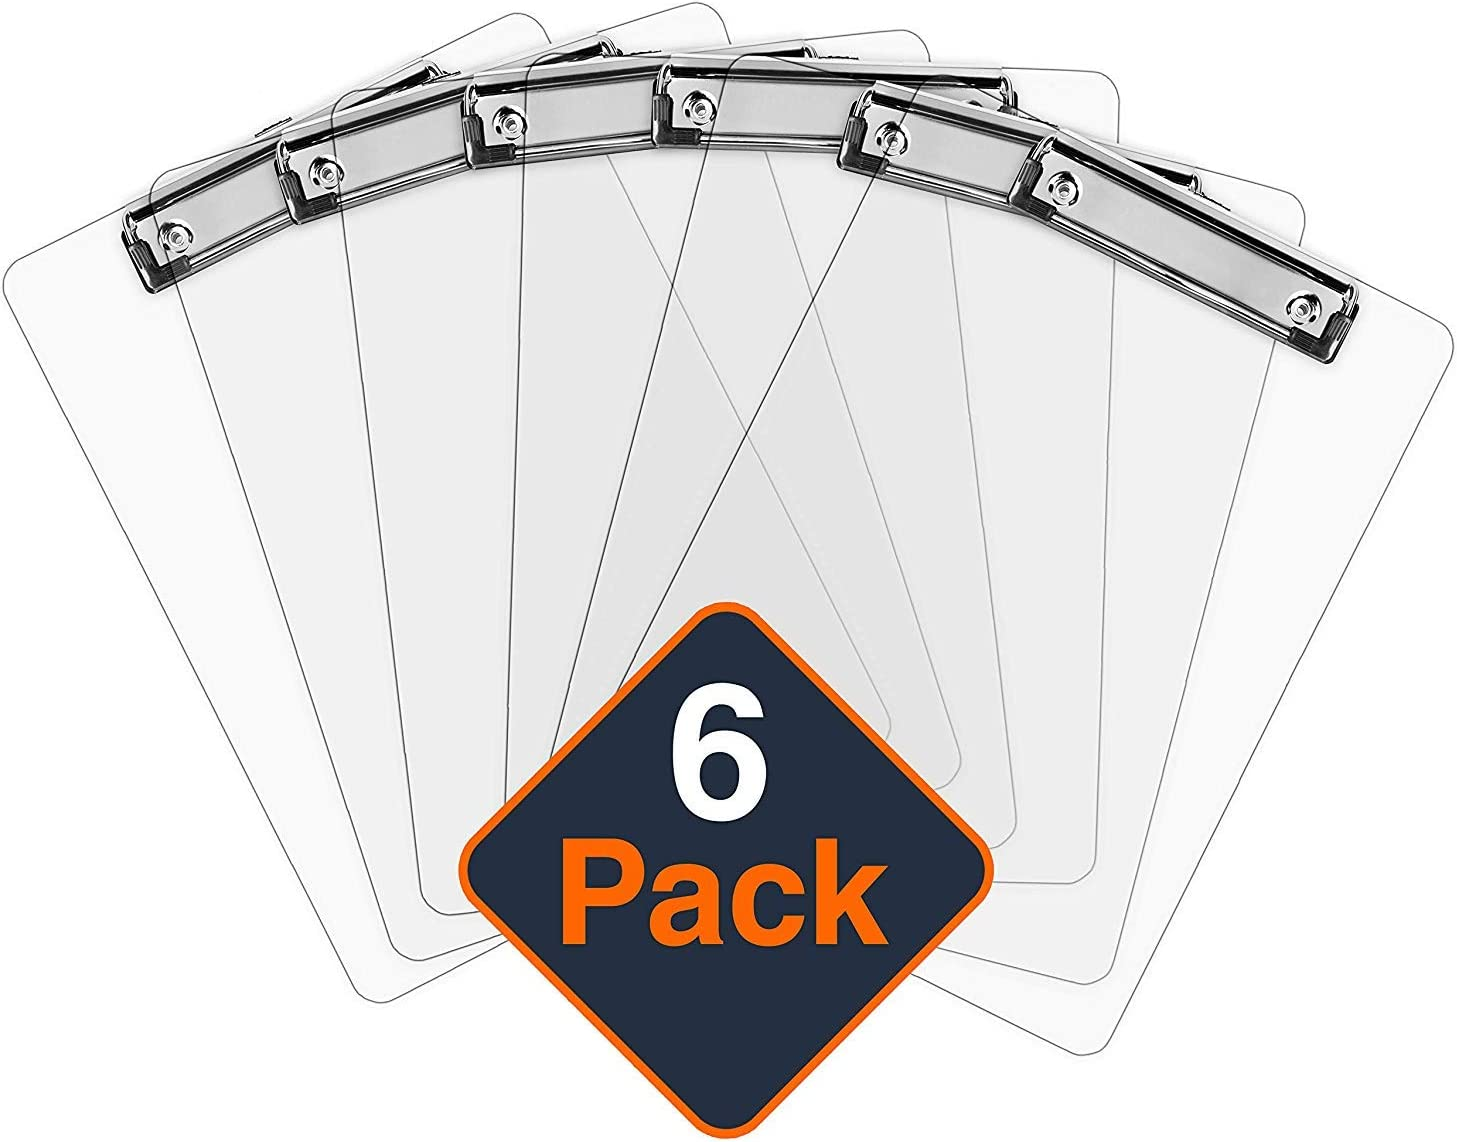 Plastic Clipboards (Set of 6) Transparent Clipboard (Clear) Strong 12.5 x 9 Inch   Holds 100 Sheets! Acrylic Clipboards with Low Profile Clip   Cute Clip Boards Board Clips